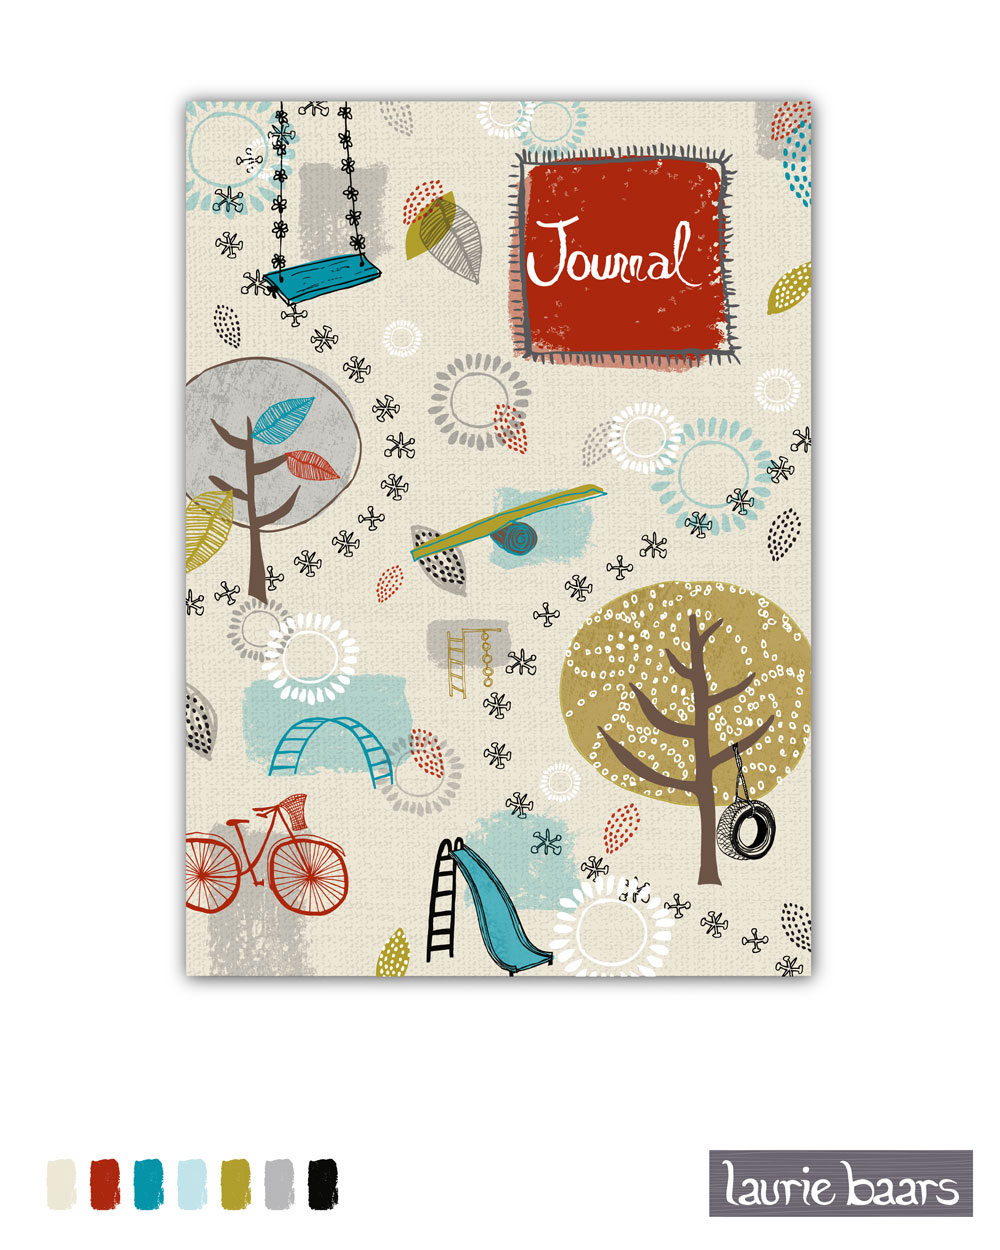 A Day in the Park journal cover by Laurie Baars